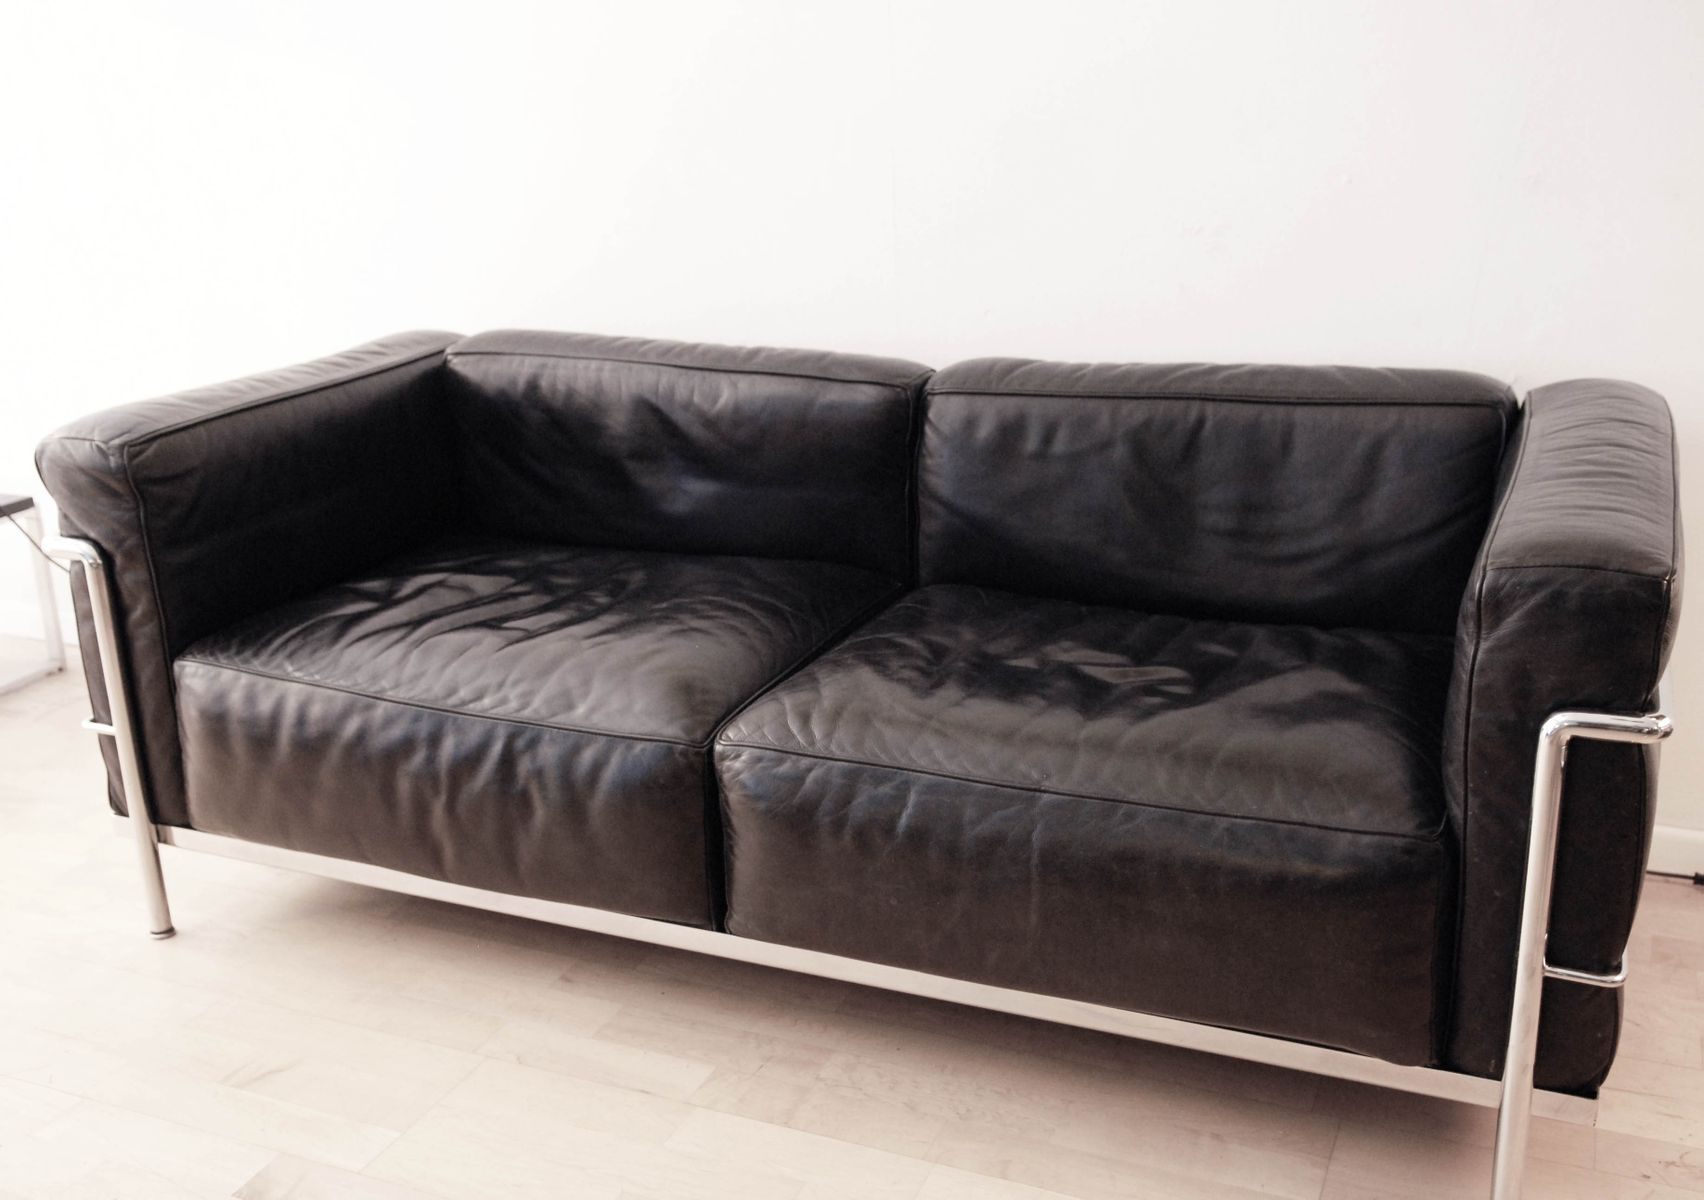 Lc3 grand confort sofa by le corbusier for cassina for for Sofas gran confort